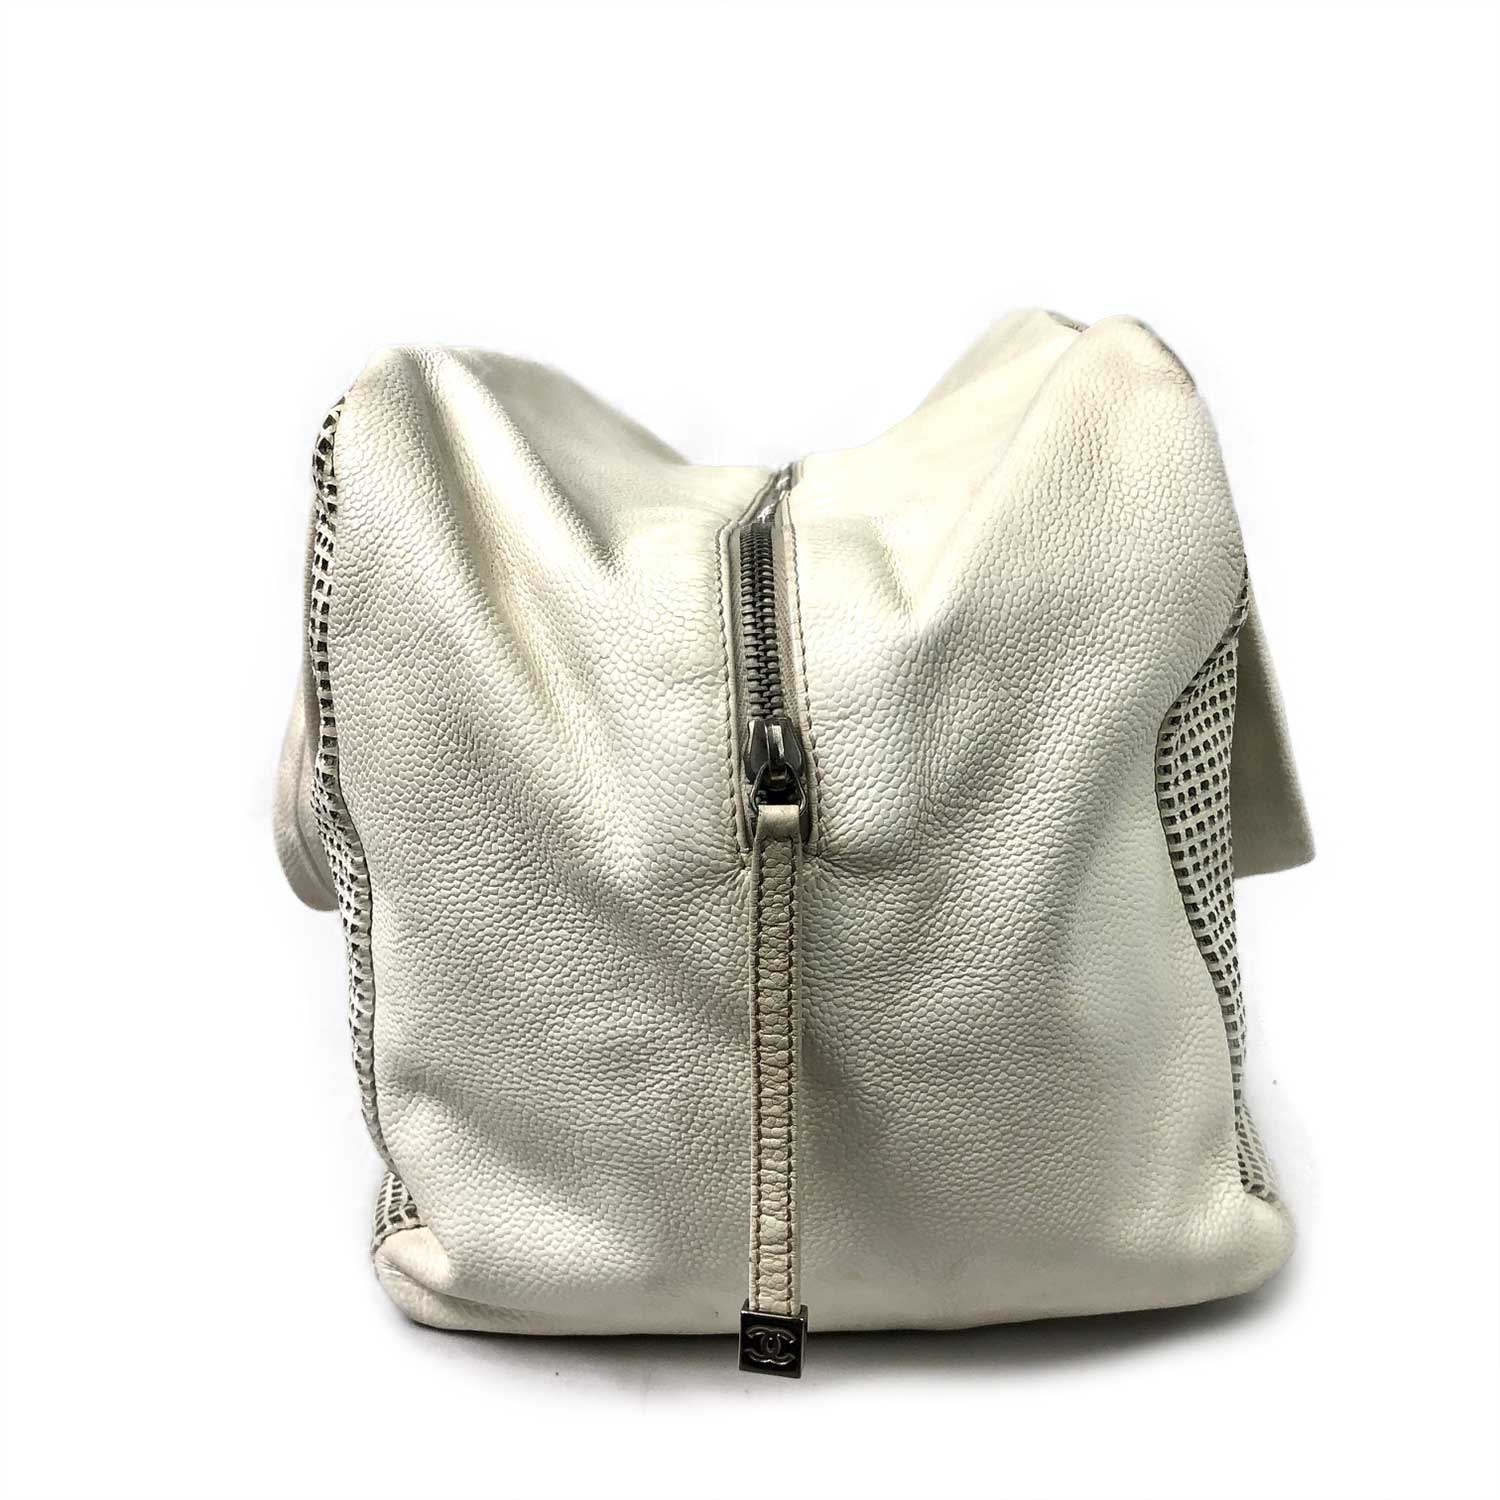 Bolsa Chanel Up In The Air Boston Offwhite